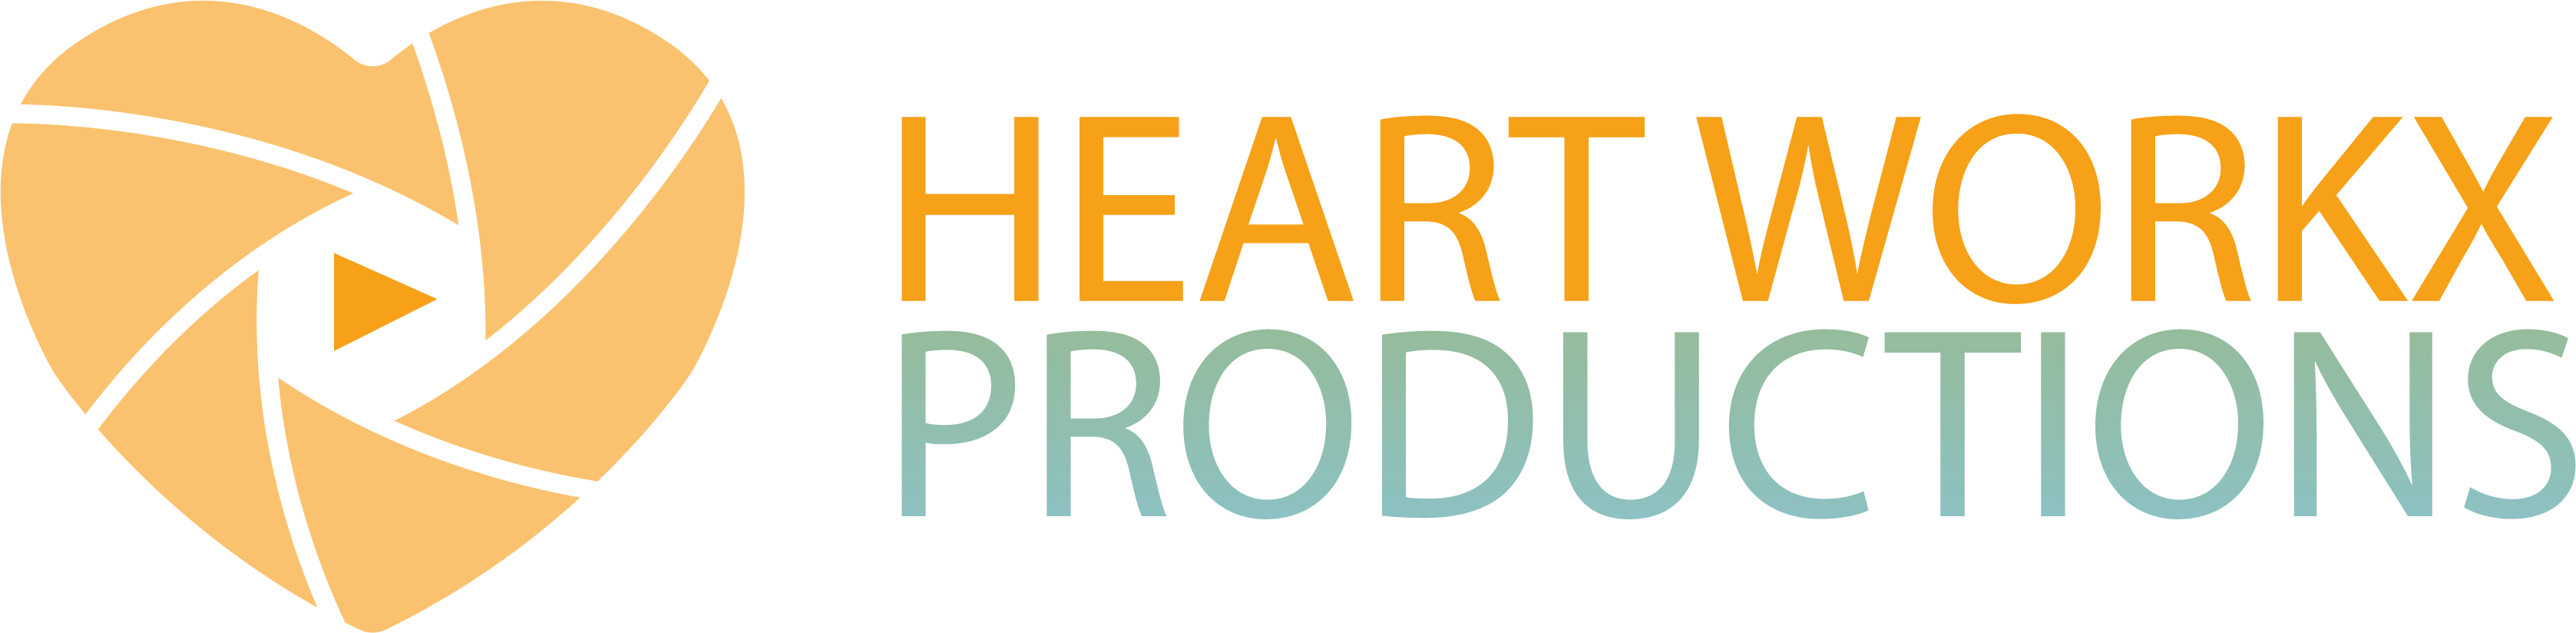 Heart Workx Productions